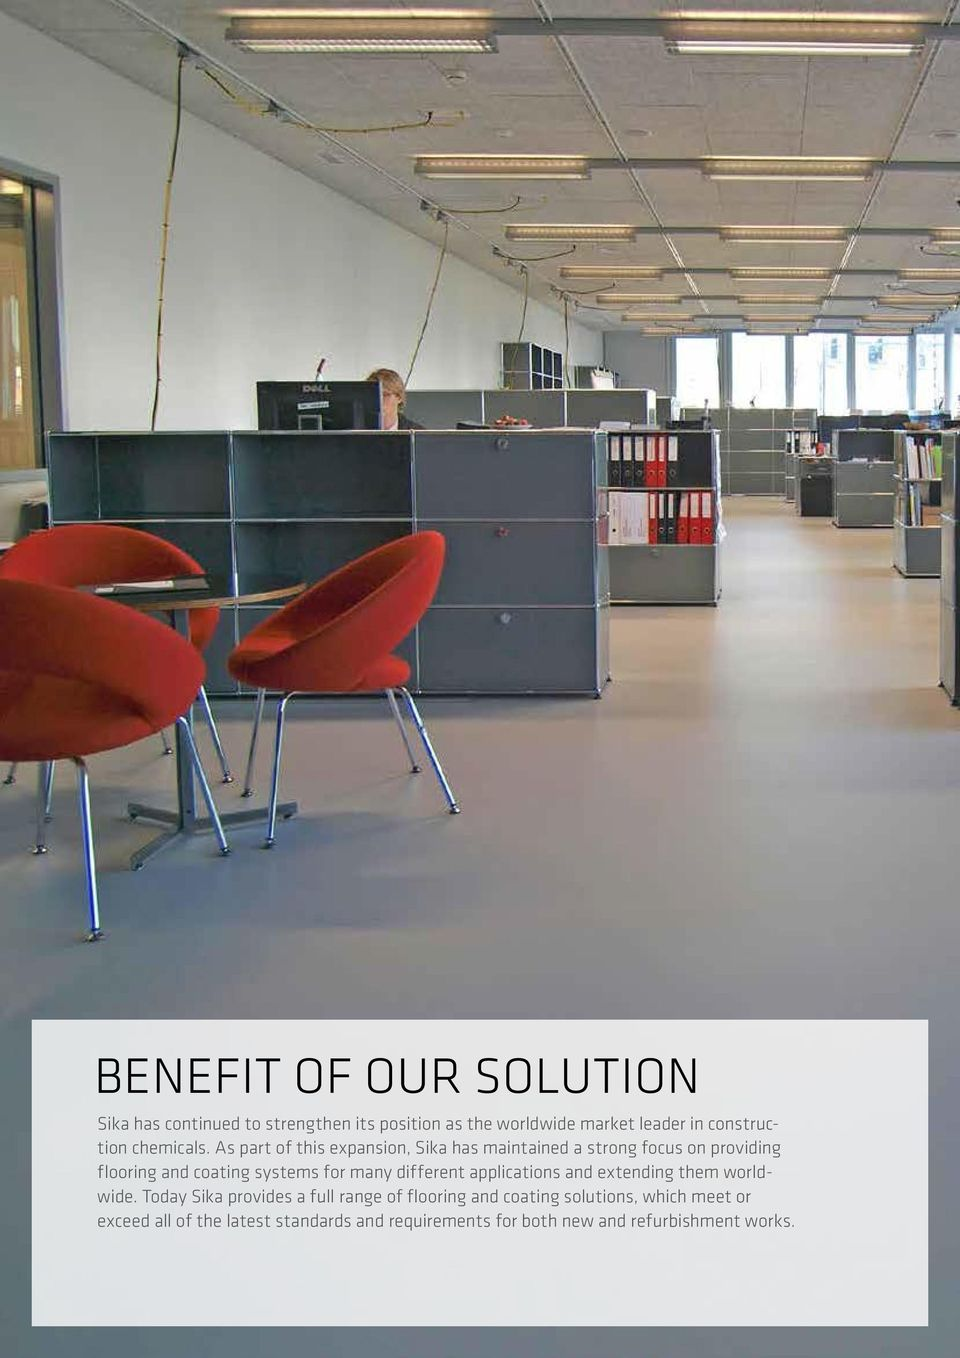 FLOORING SIKA TECHNOLOGY AND CONCEPTS FOR FLOORING AND COATING - PDF